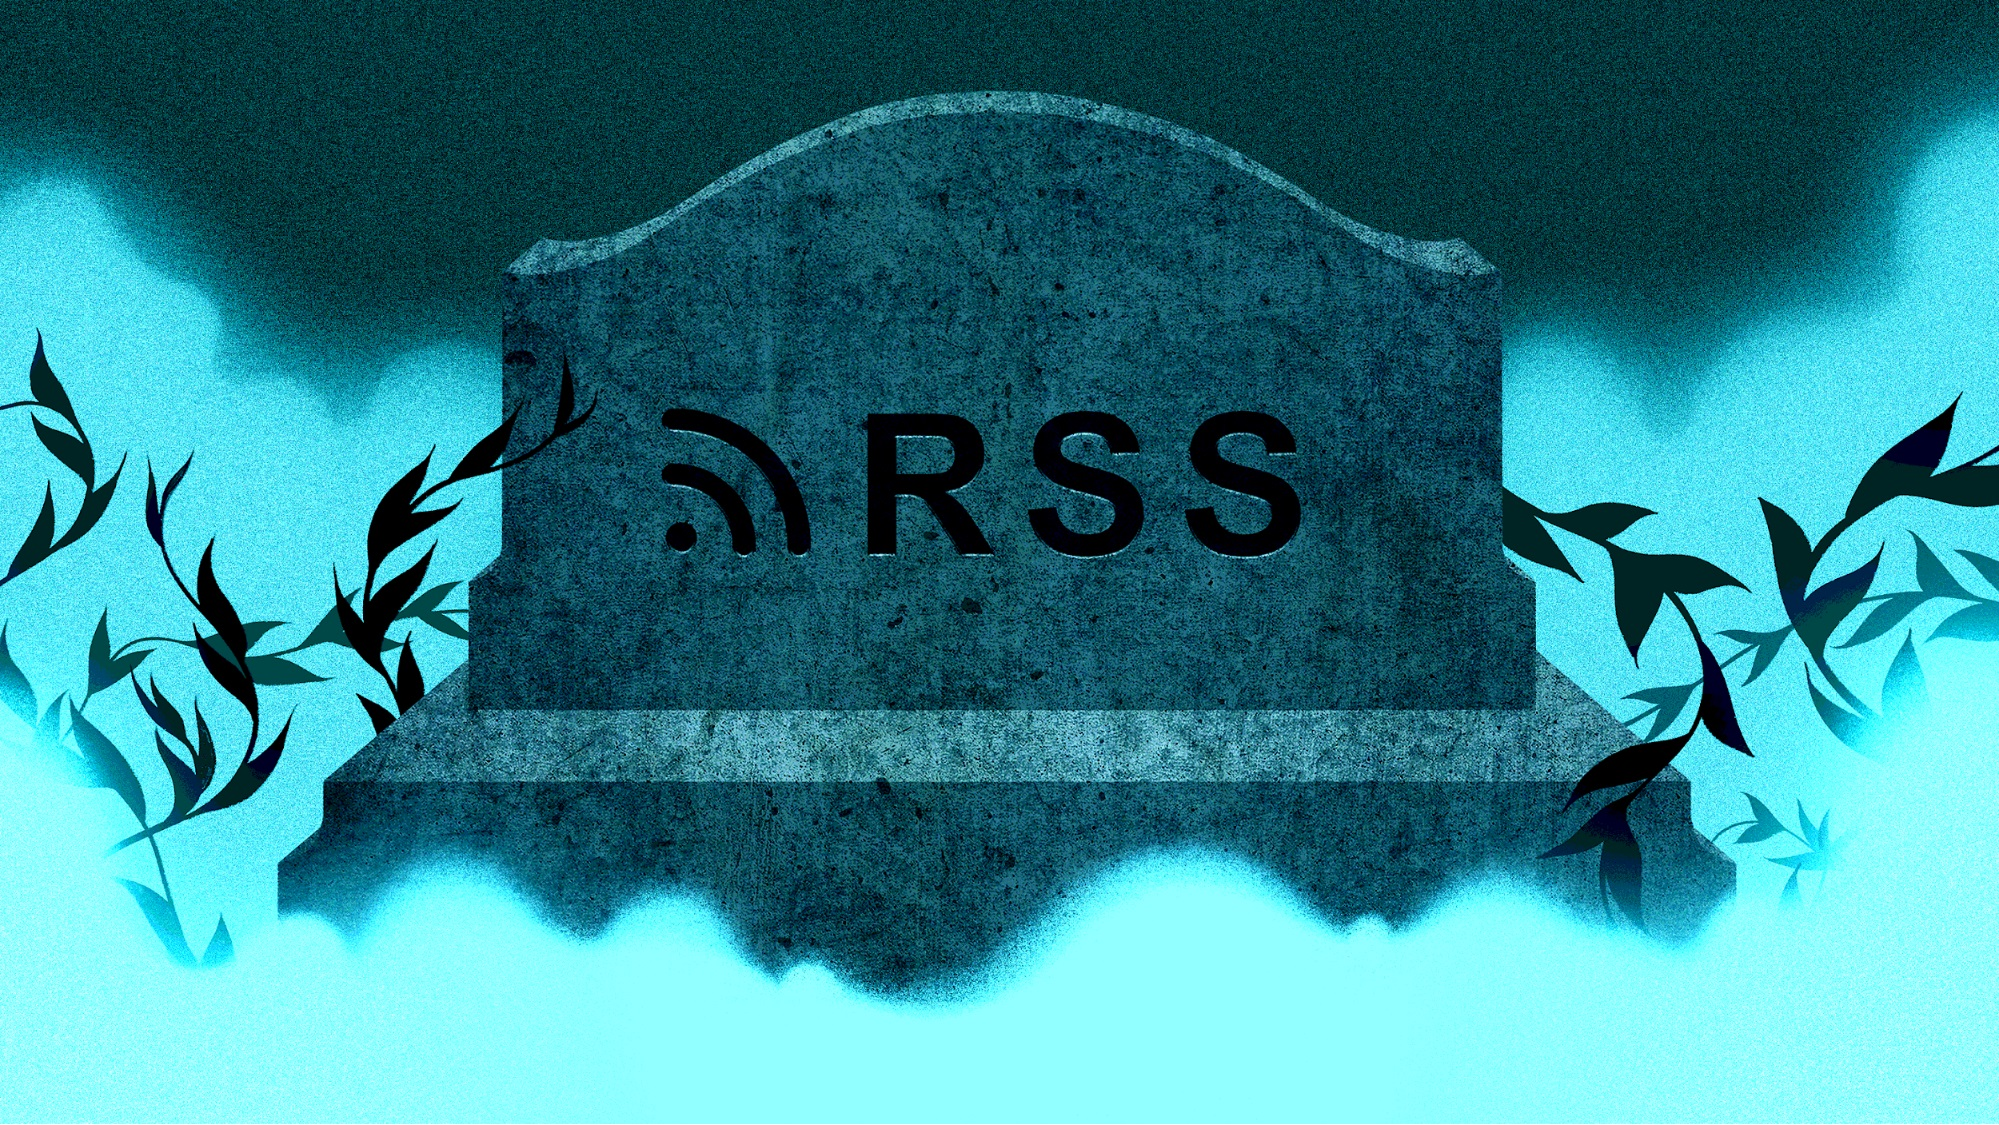 RSS tombstone